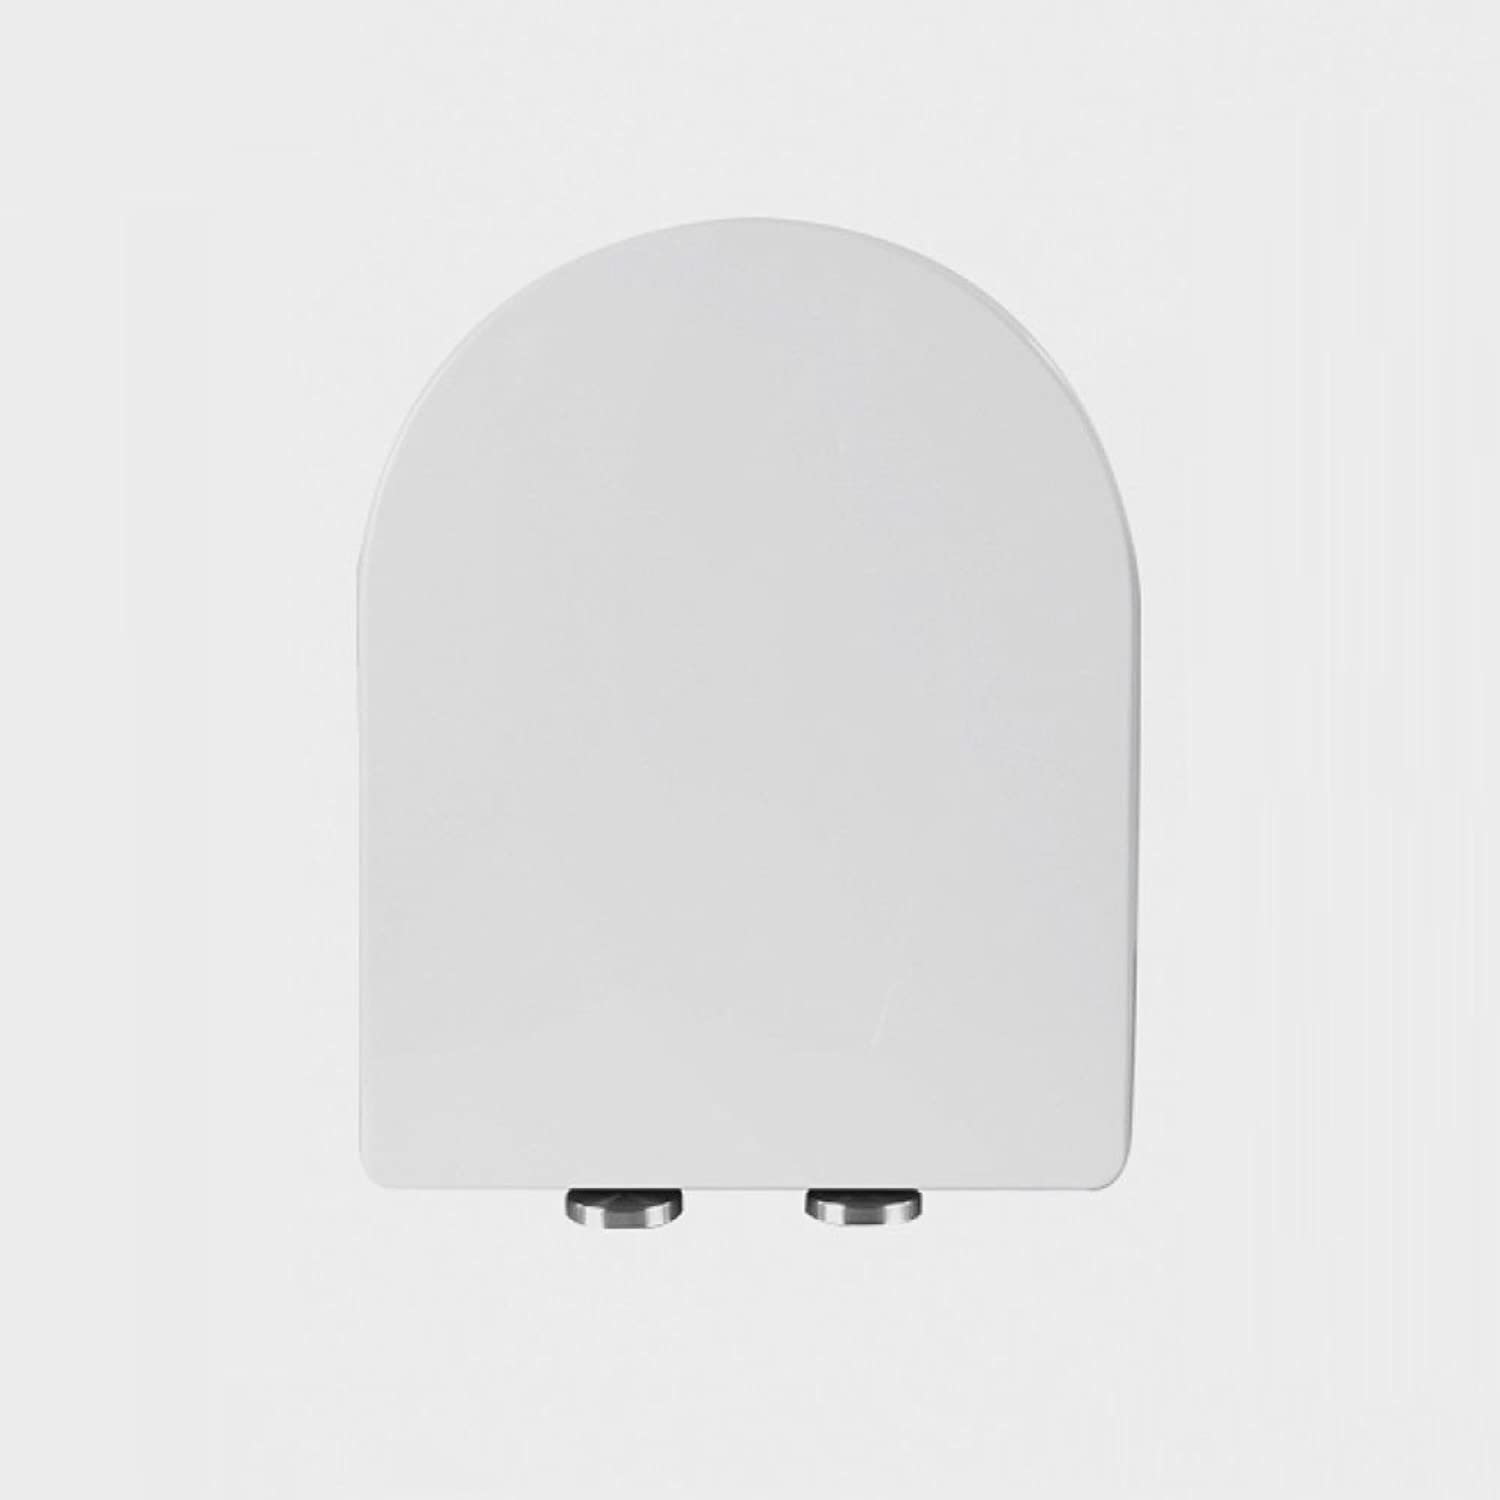 Toilet Seat Universal Recessed Easy To Install Toilet Lid Antibacterial PP Cover,White-42cm34cm